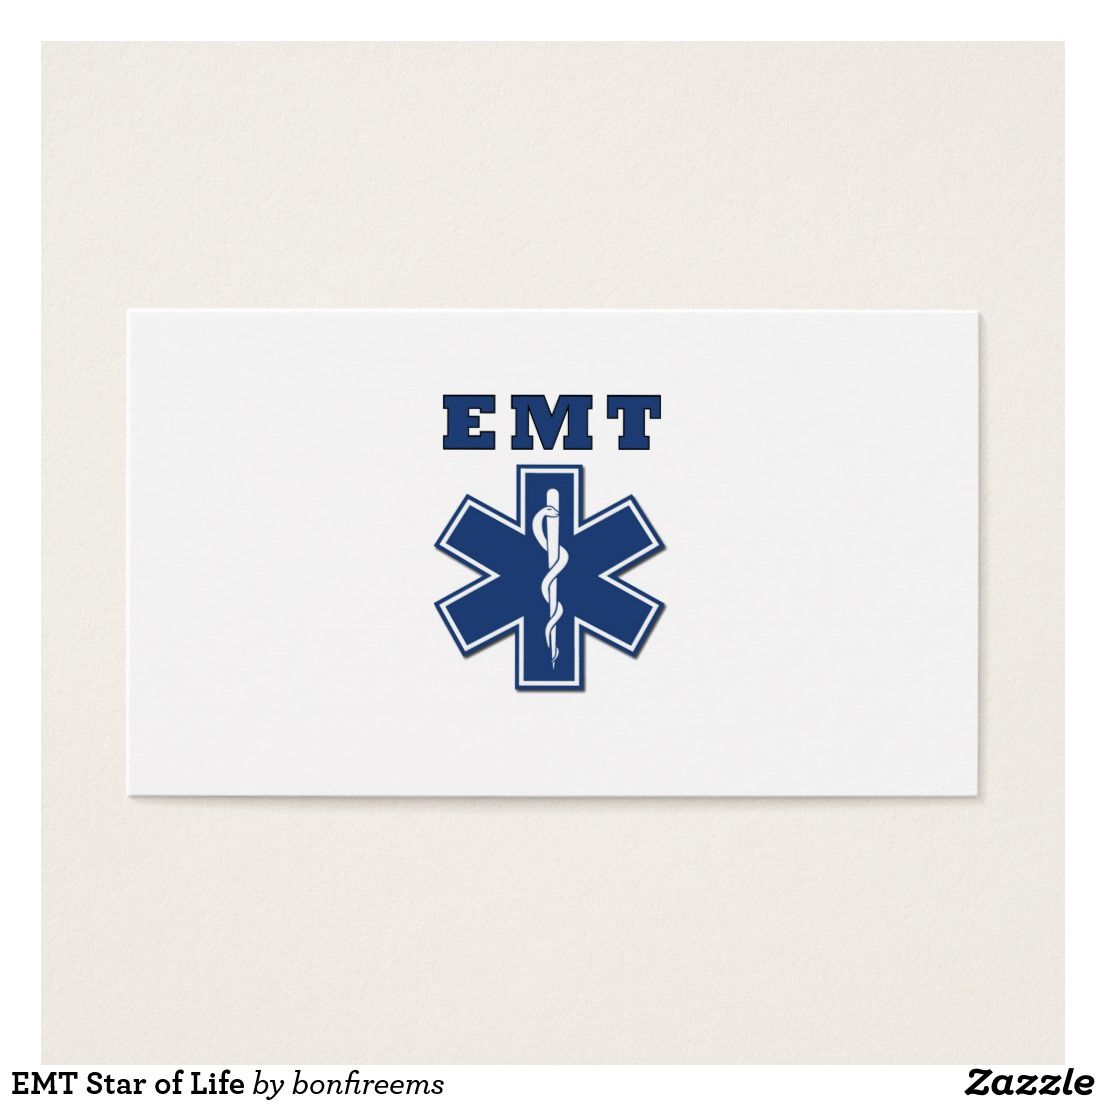 Emt star of life business card firefighter and business cards business cards emt star of life colourmoves